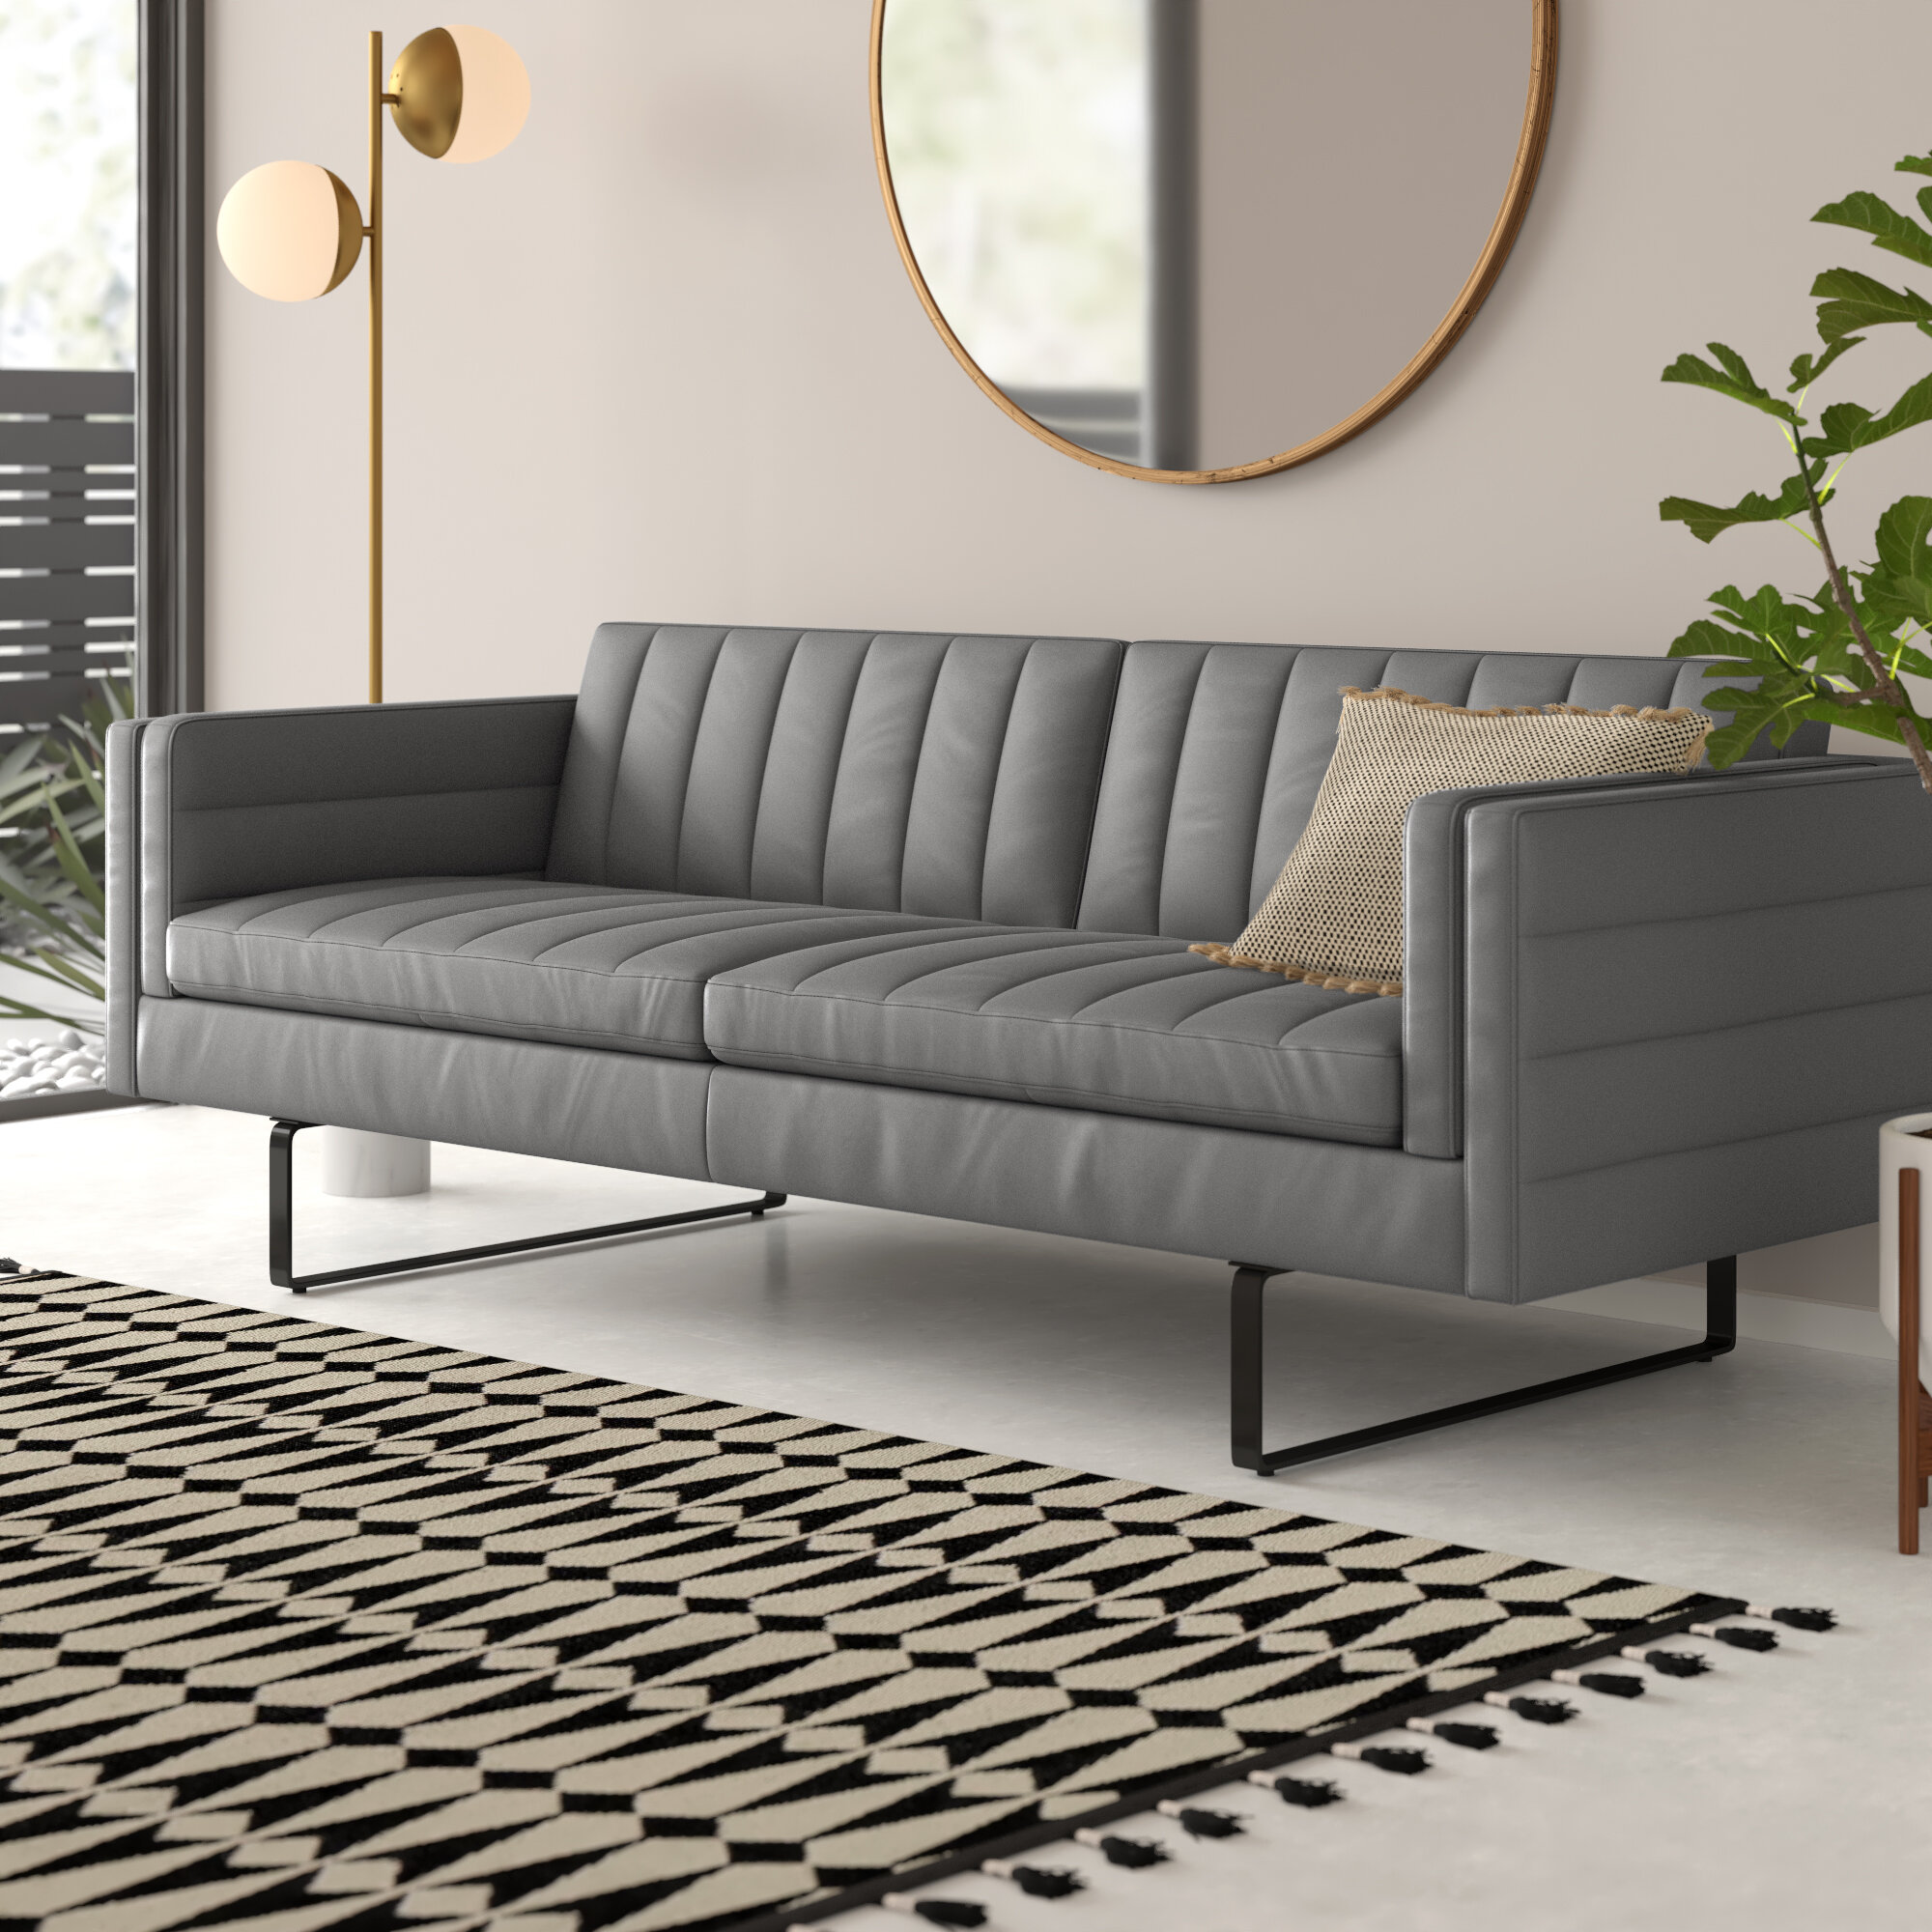 Brilliant Eliza Leather Sofa Gmtry Best Dining Table And Chair Ideas Images Gmtryco